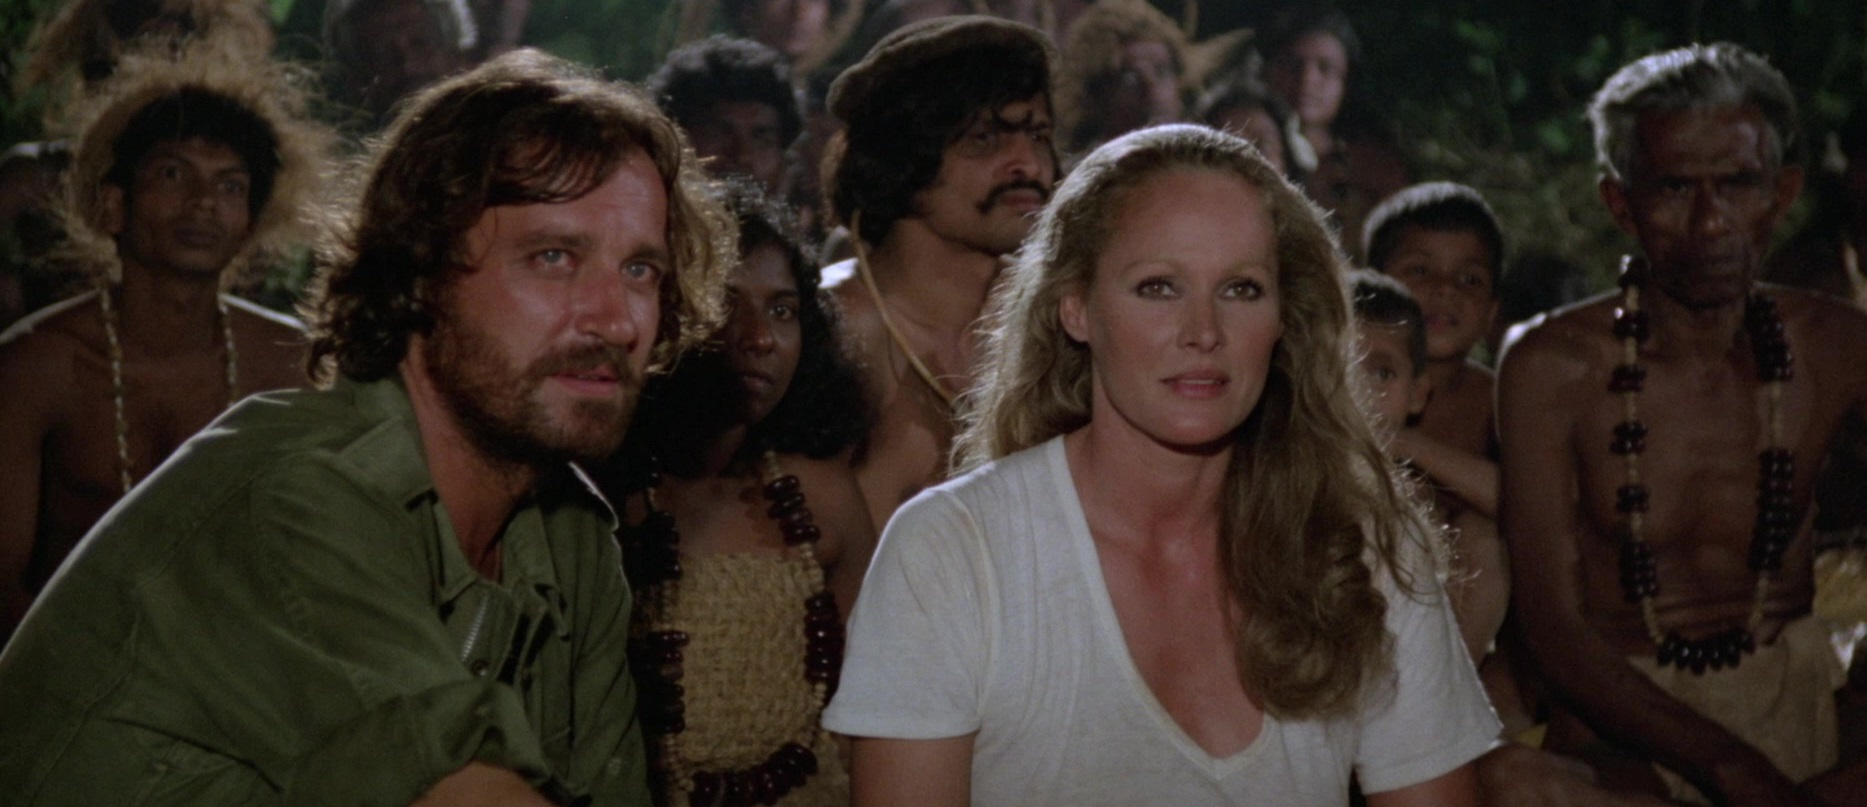 Antonio Marsina and Ursula Andress among the native tribes in Slave of the Cannibal God (1978)